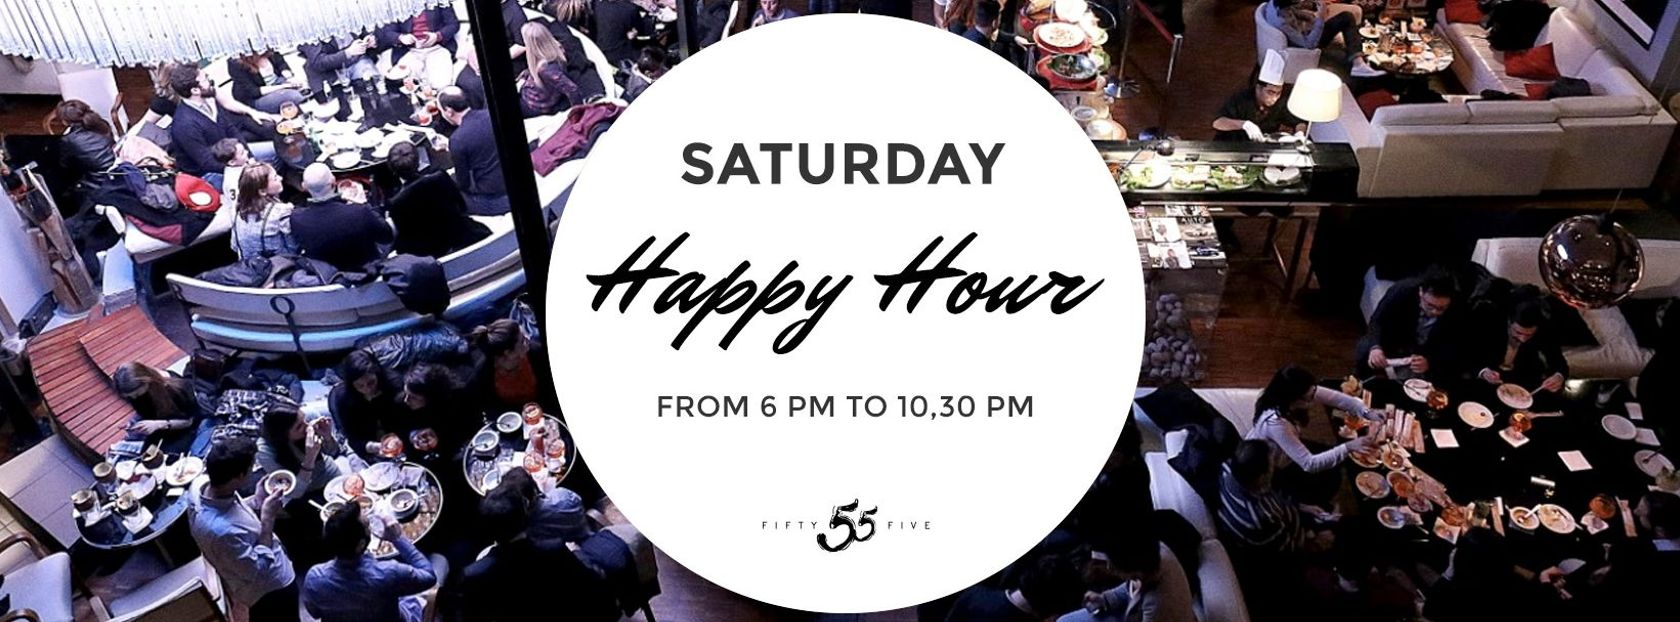 55 Milano - Saurday - Happy Hour